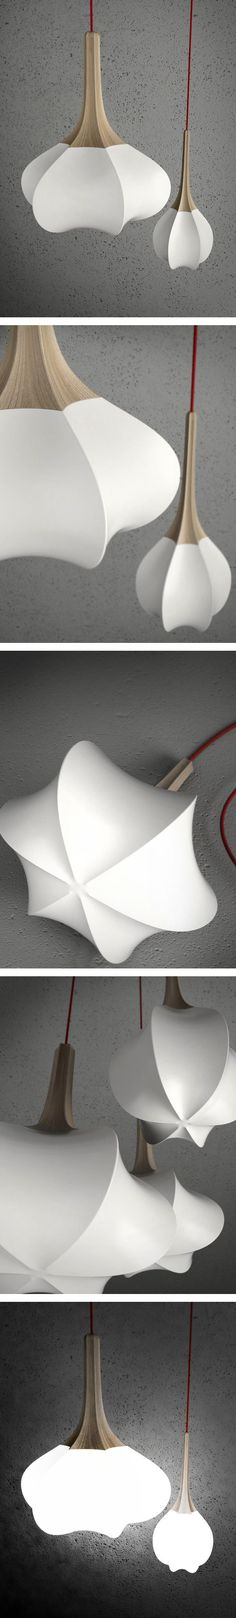 The swell lamp gives ideas of a shaped handbag to be created for an evening out to a 'white party'.